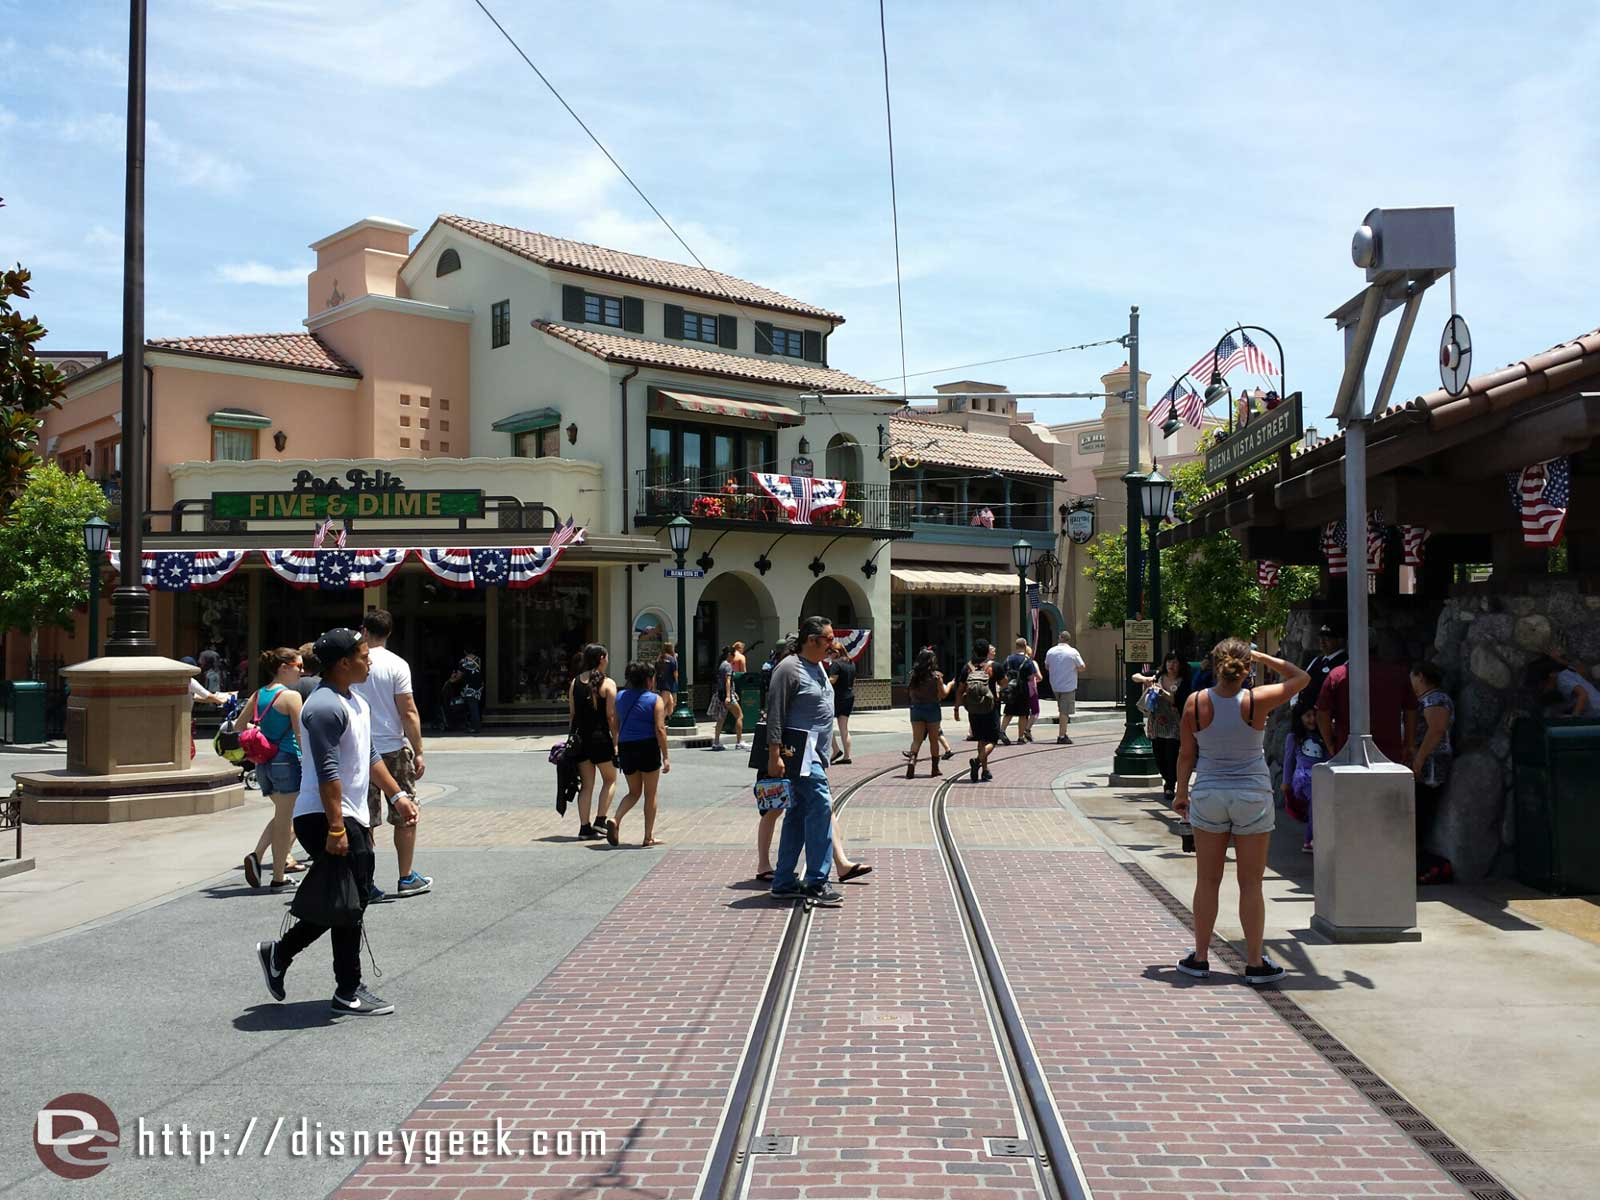 Just arrived at the #Disneyland Resort first stop #BuenaVistaStreet today.